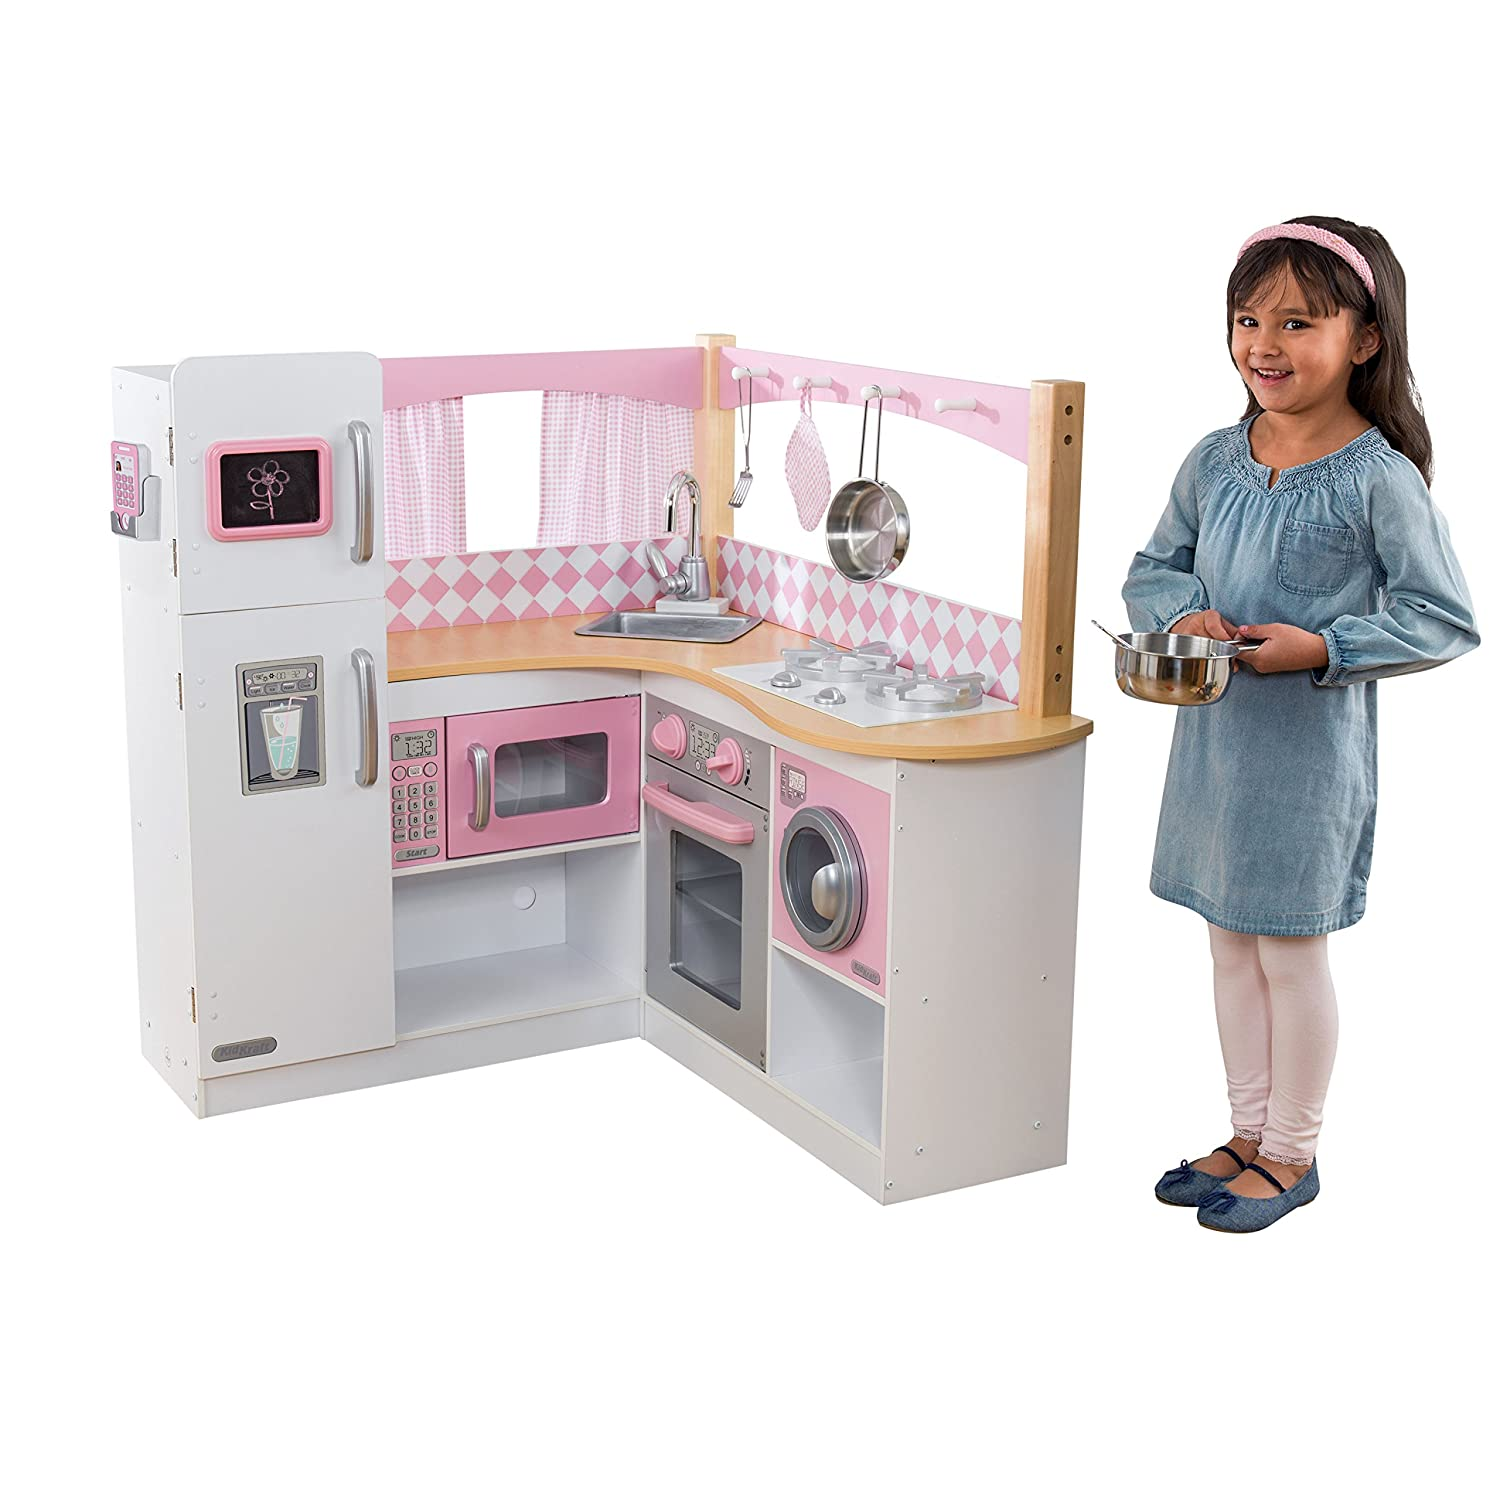 Amazon.com: KidKraft Grand Gourmet Corner Kitchen: Toys & Games